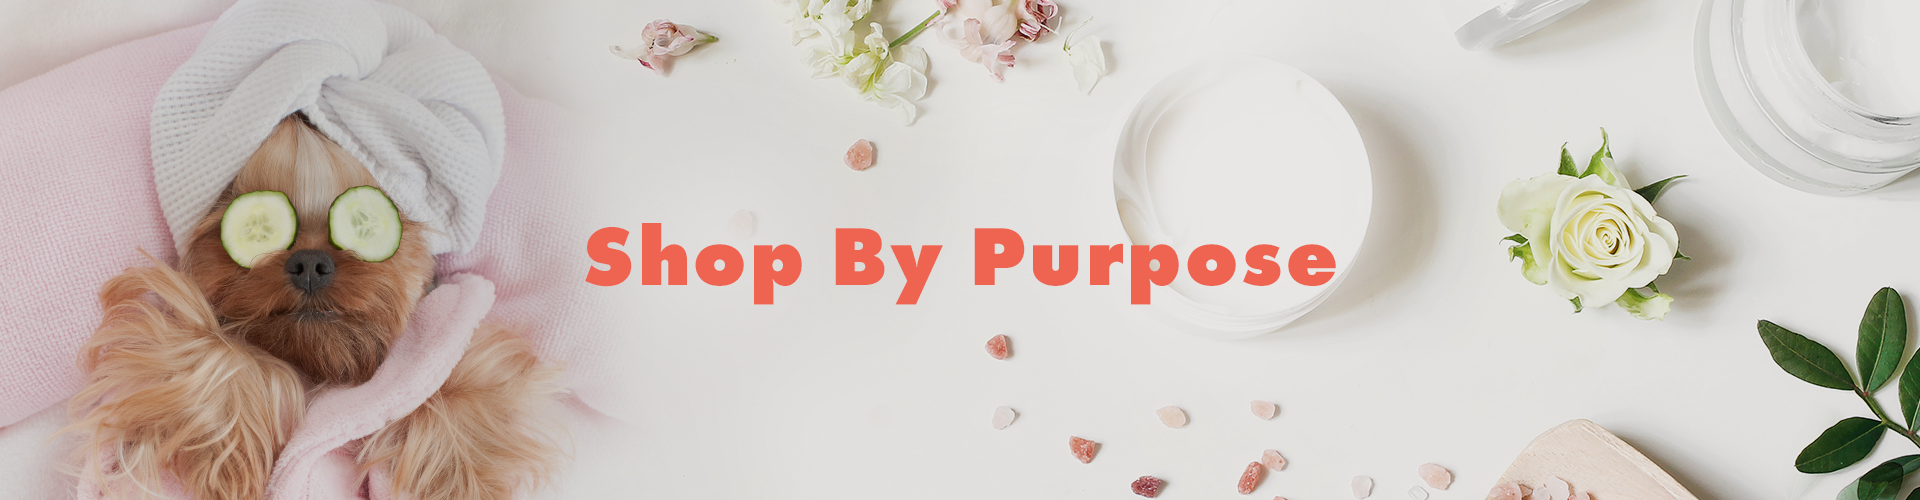 Shop By Purpose